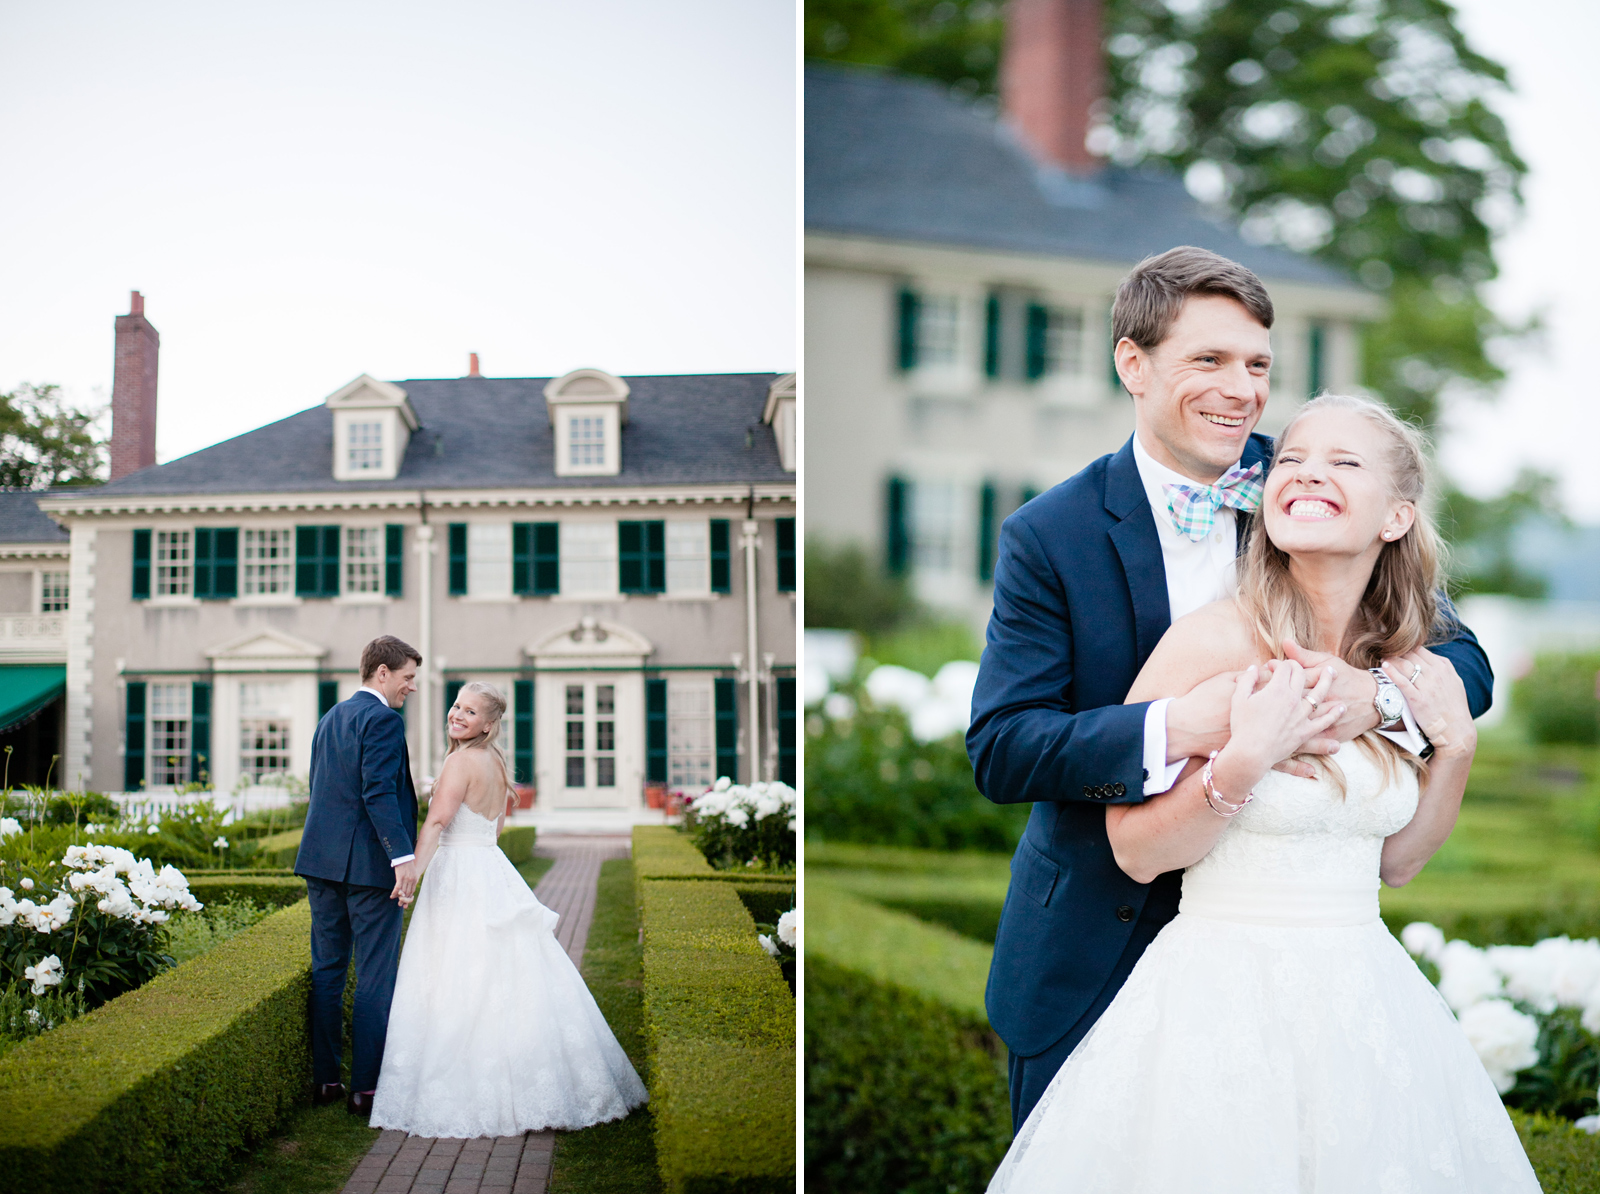 hildene wedding in vermont